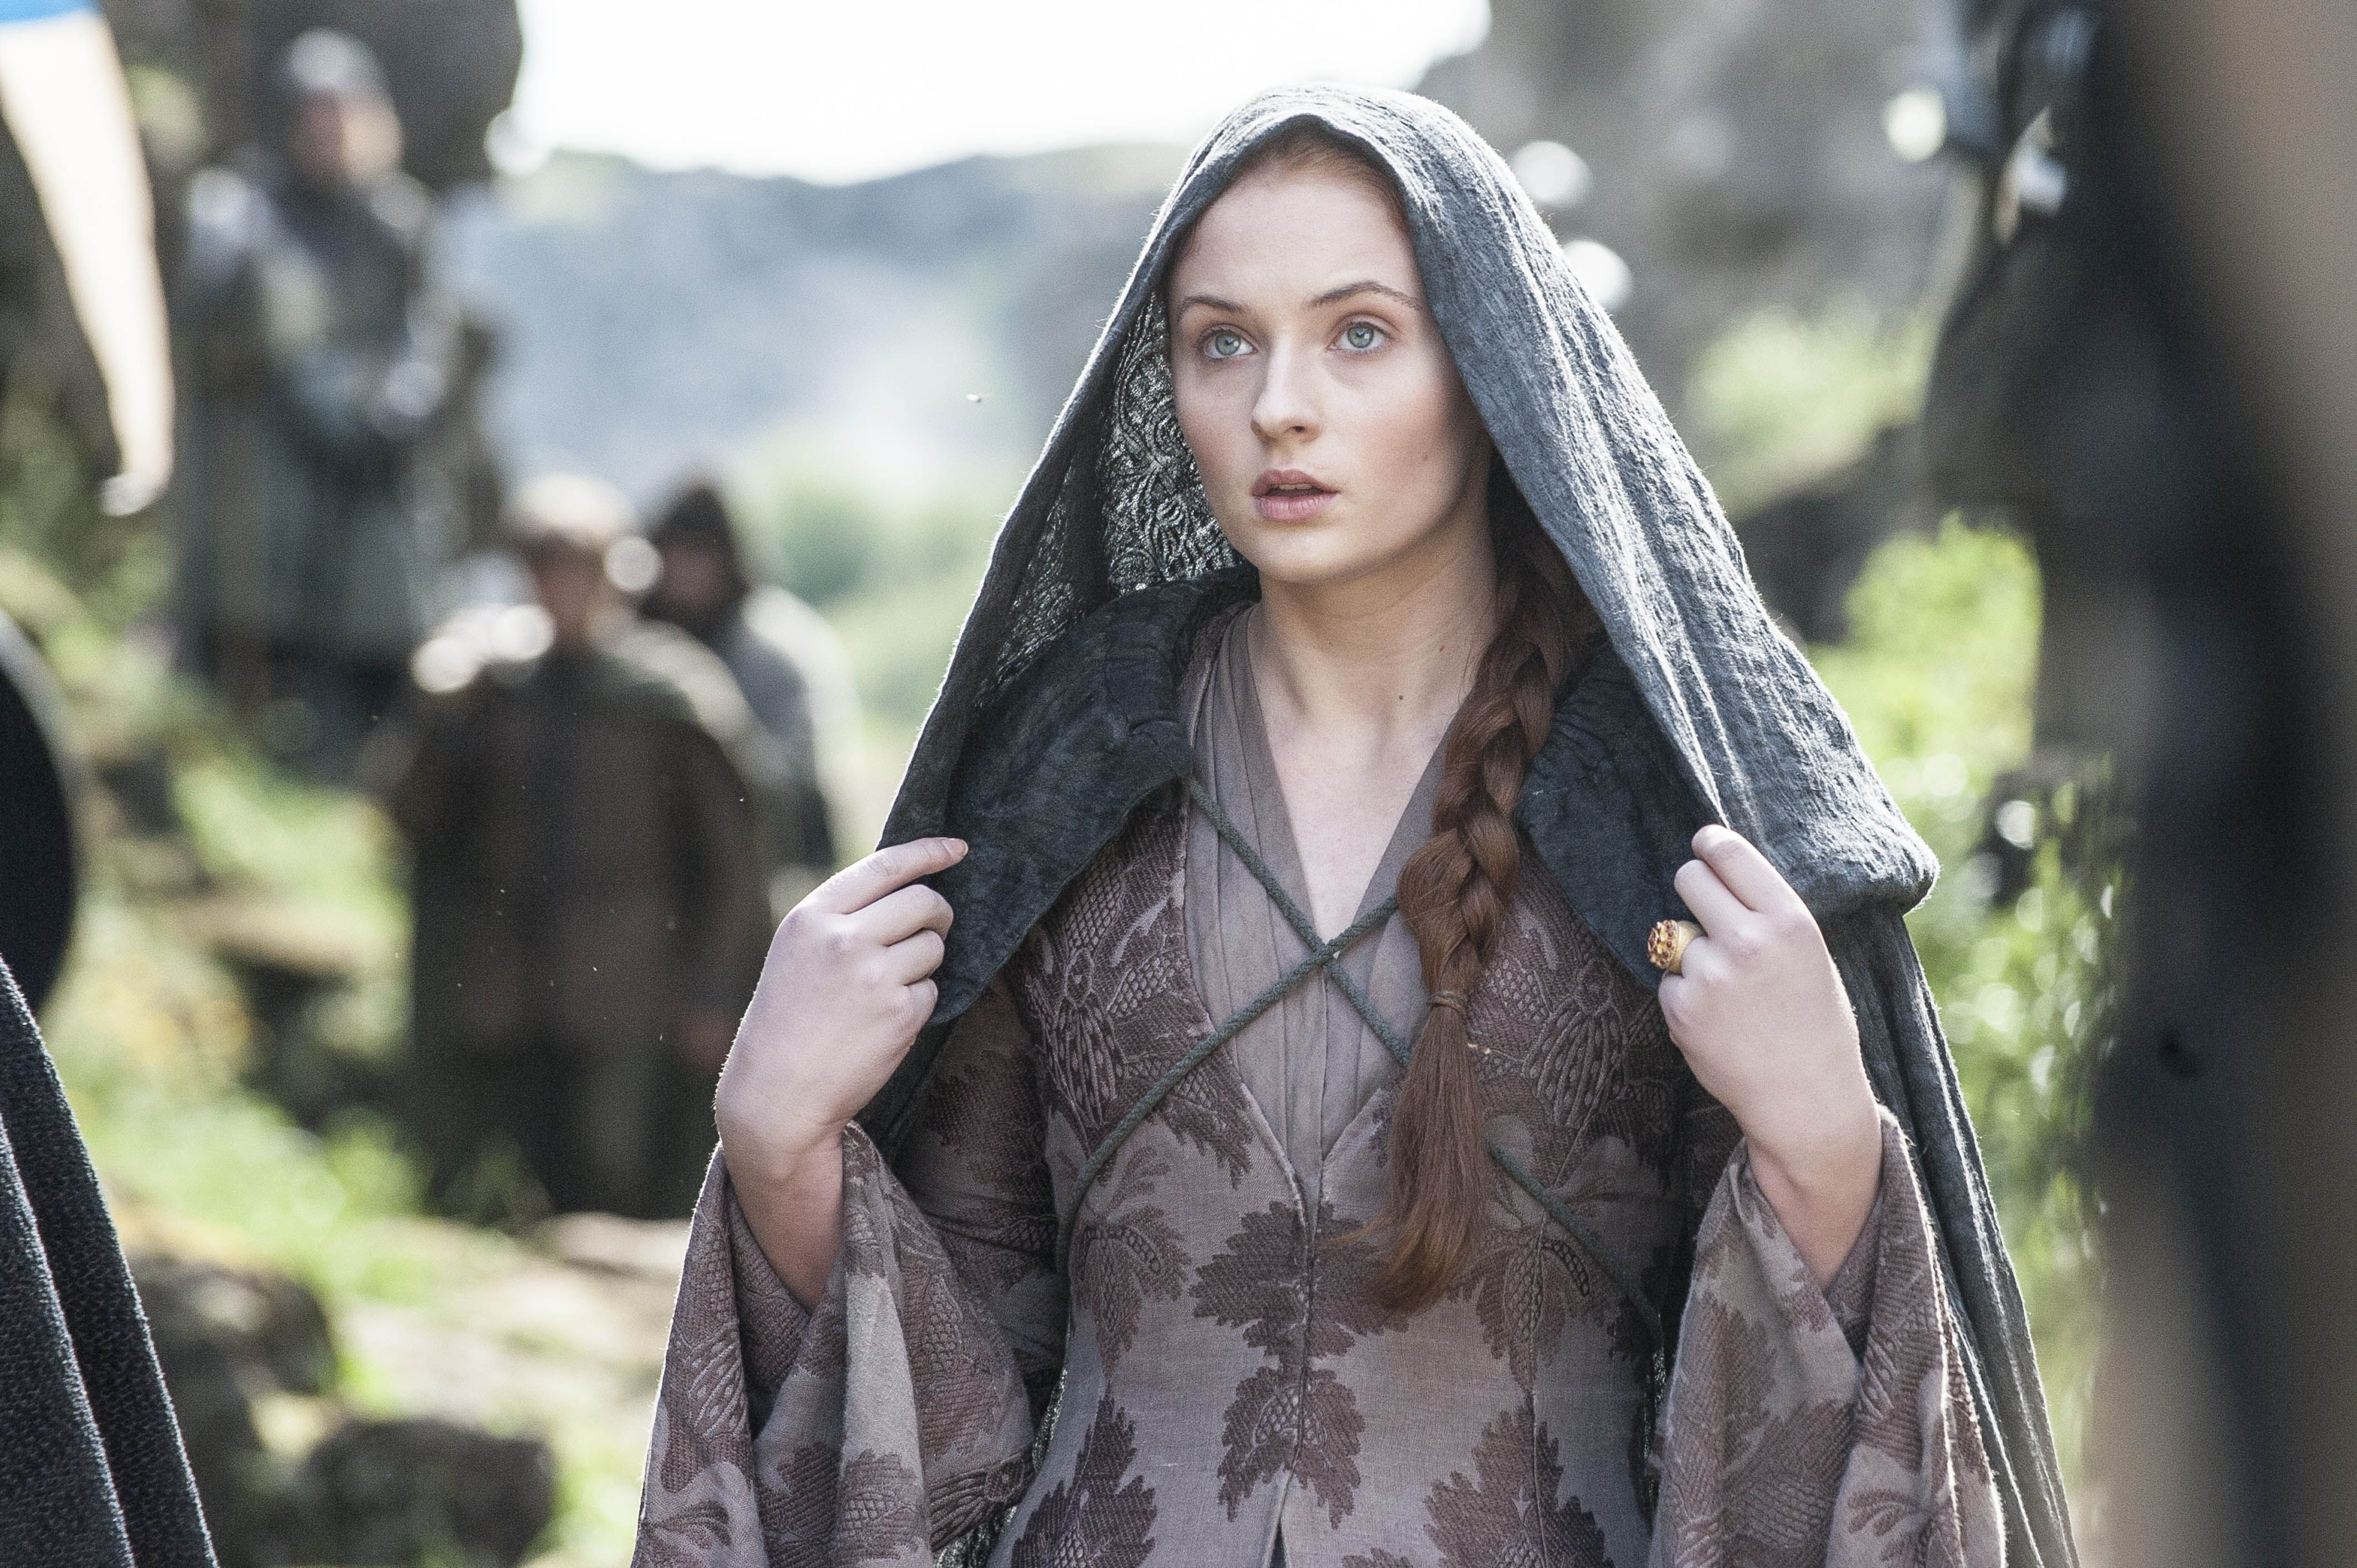 Sophie Turner Sansa Stark Game Of Thrones Season 6 Wallpapers For Desktop